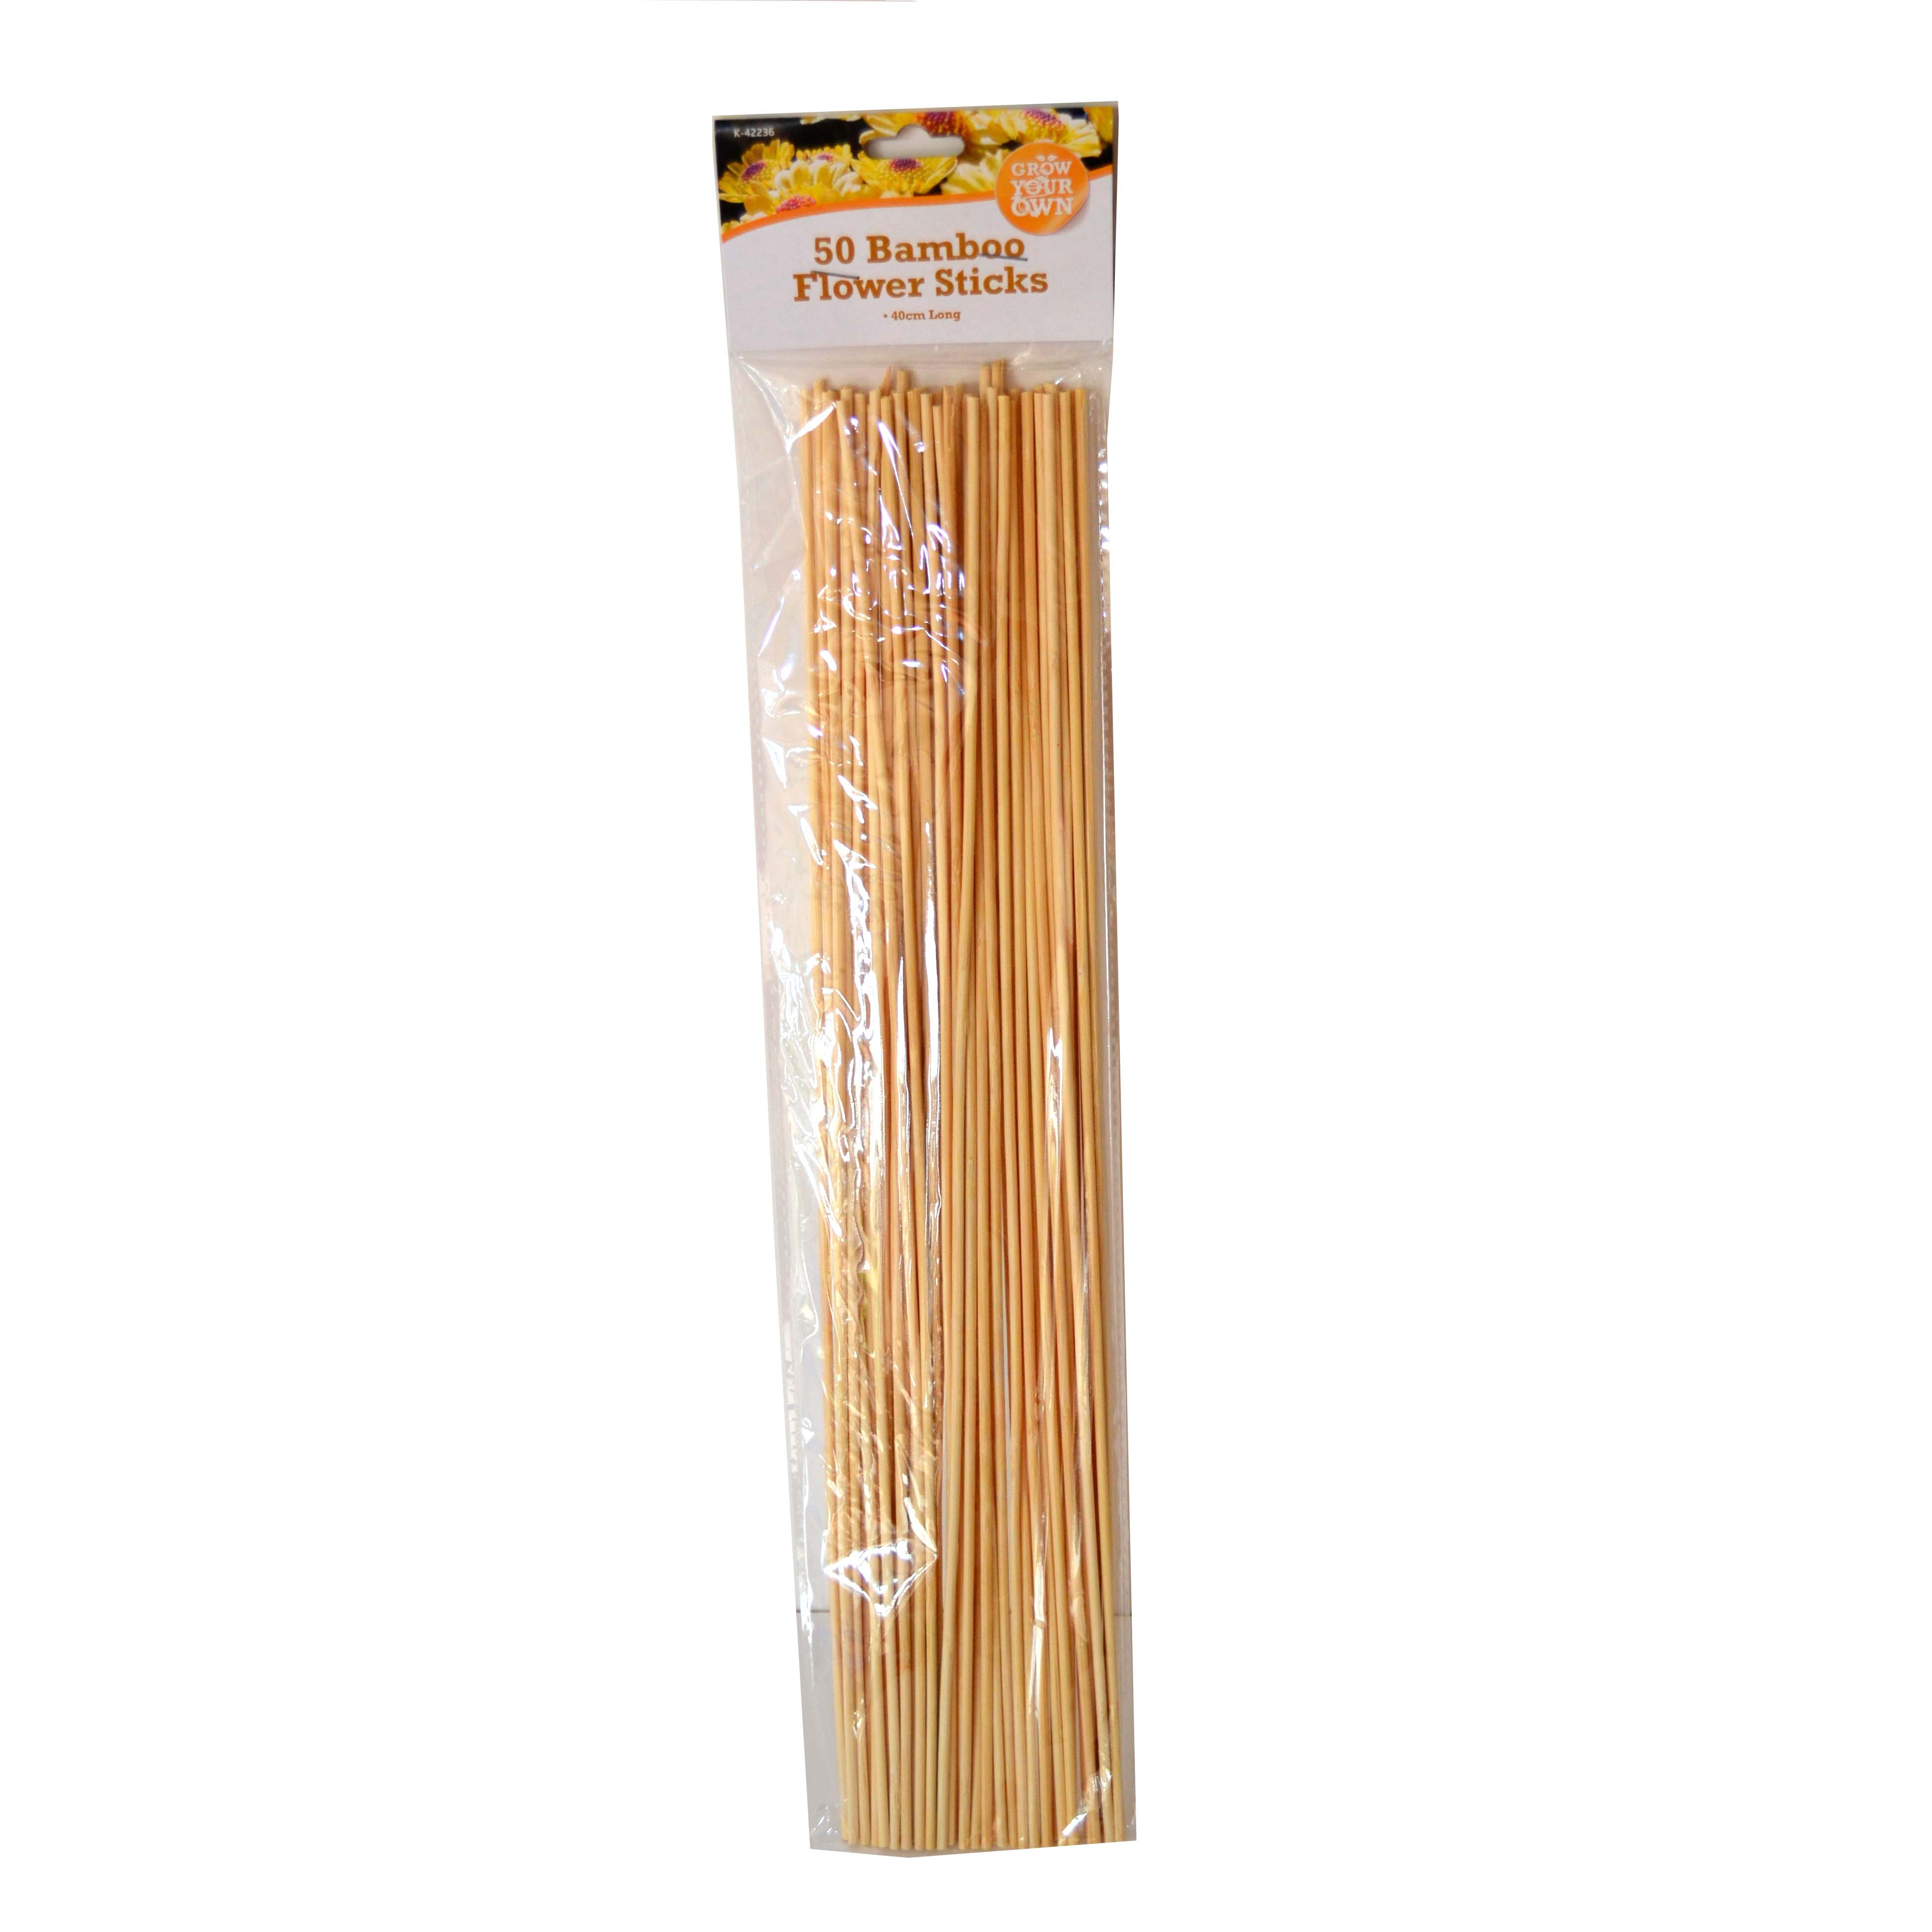 Bamboo growing sticks 50 play resource for Where to buy bamboo sticks for crafts